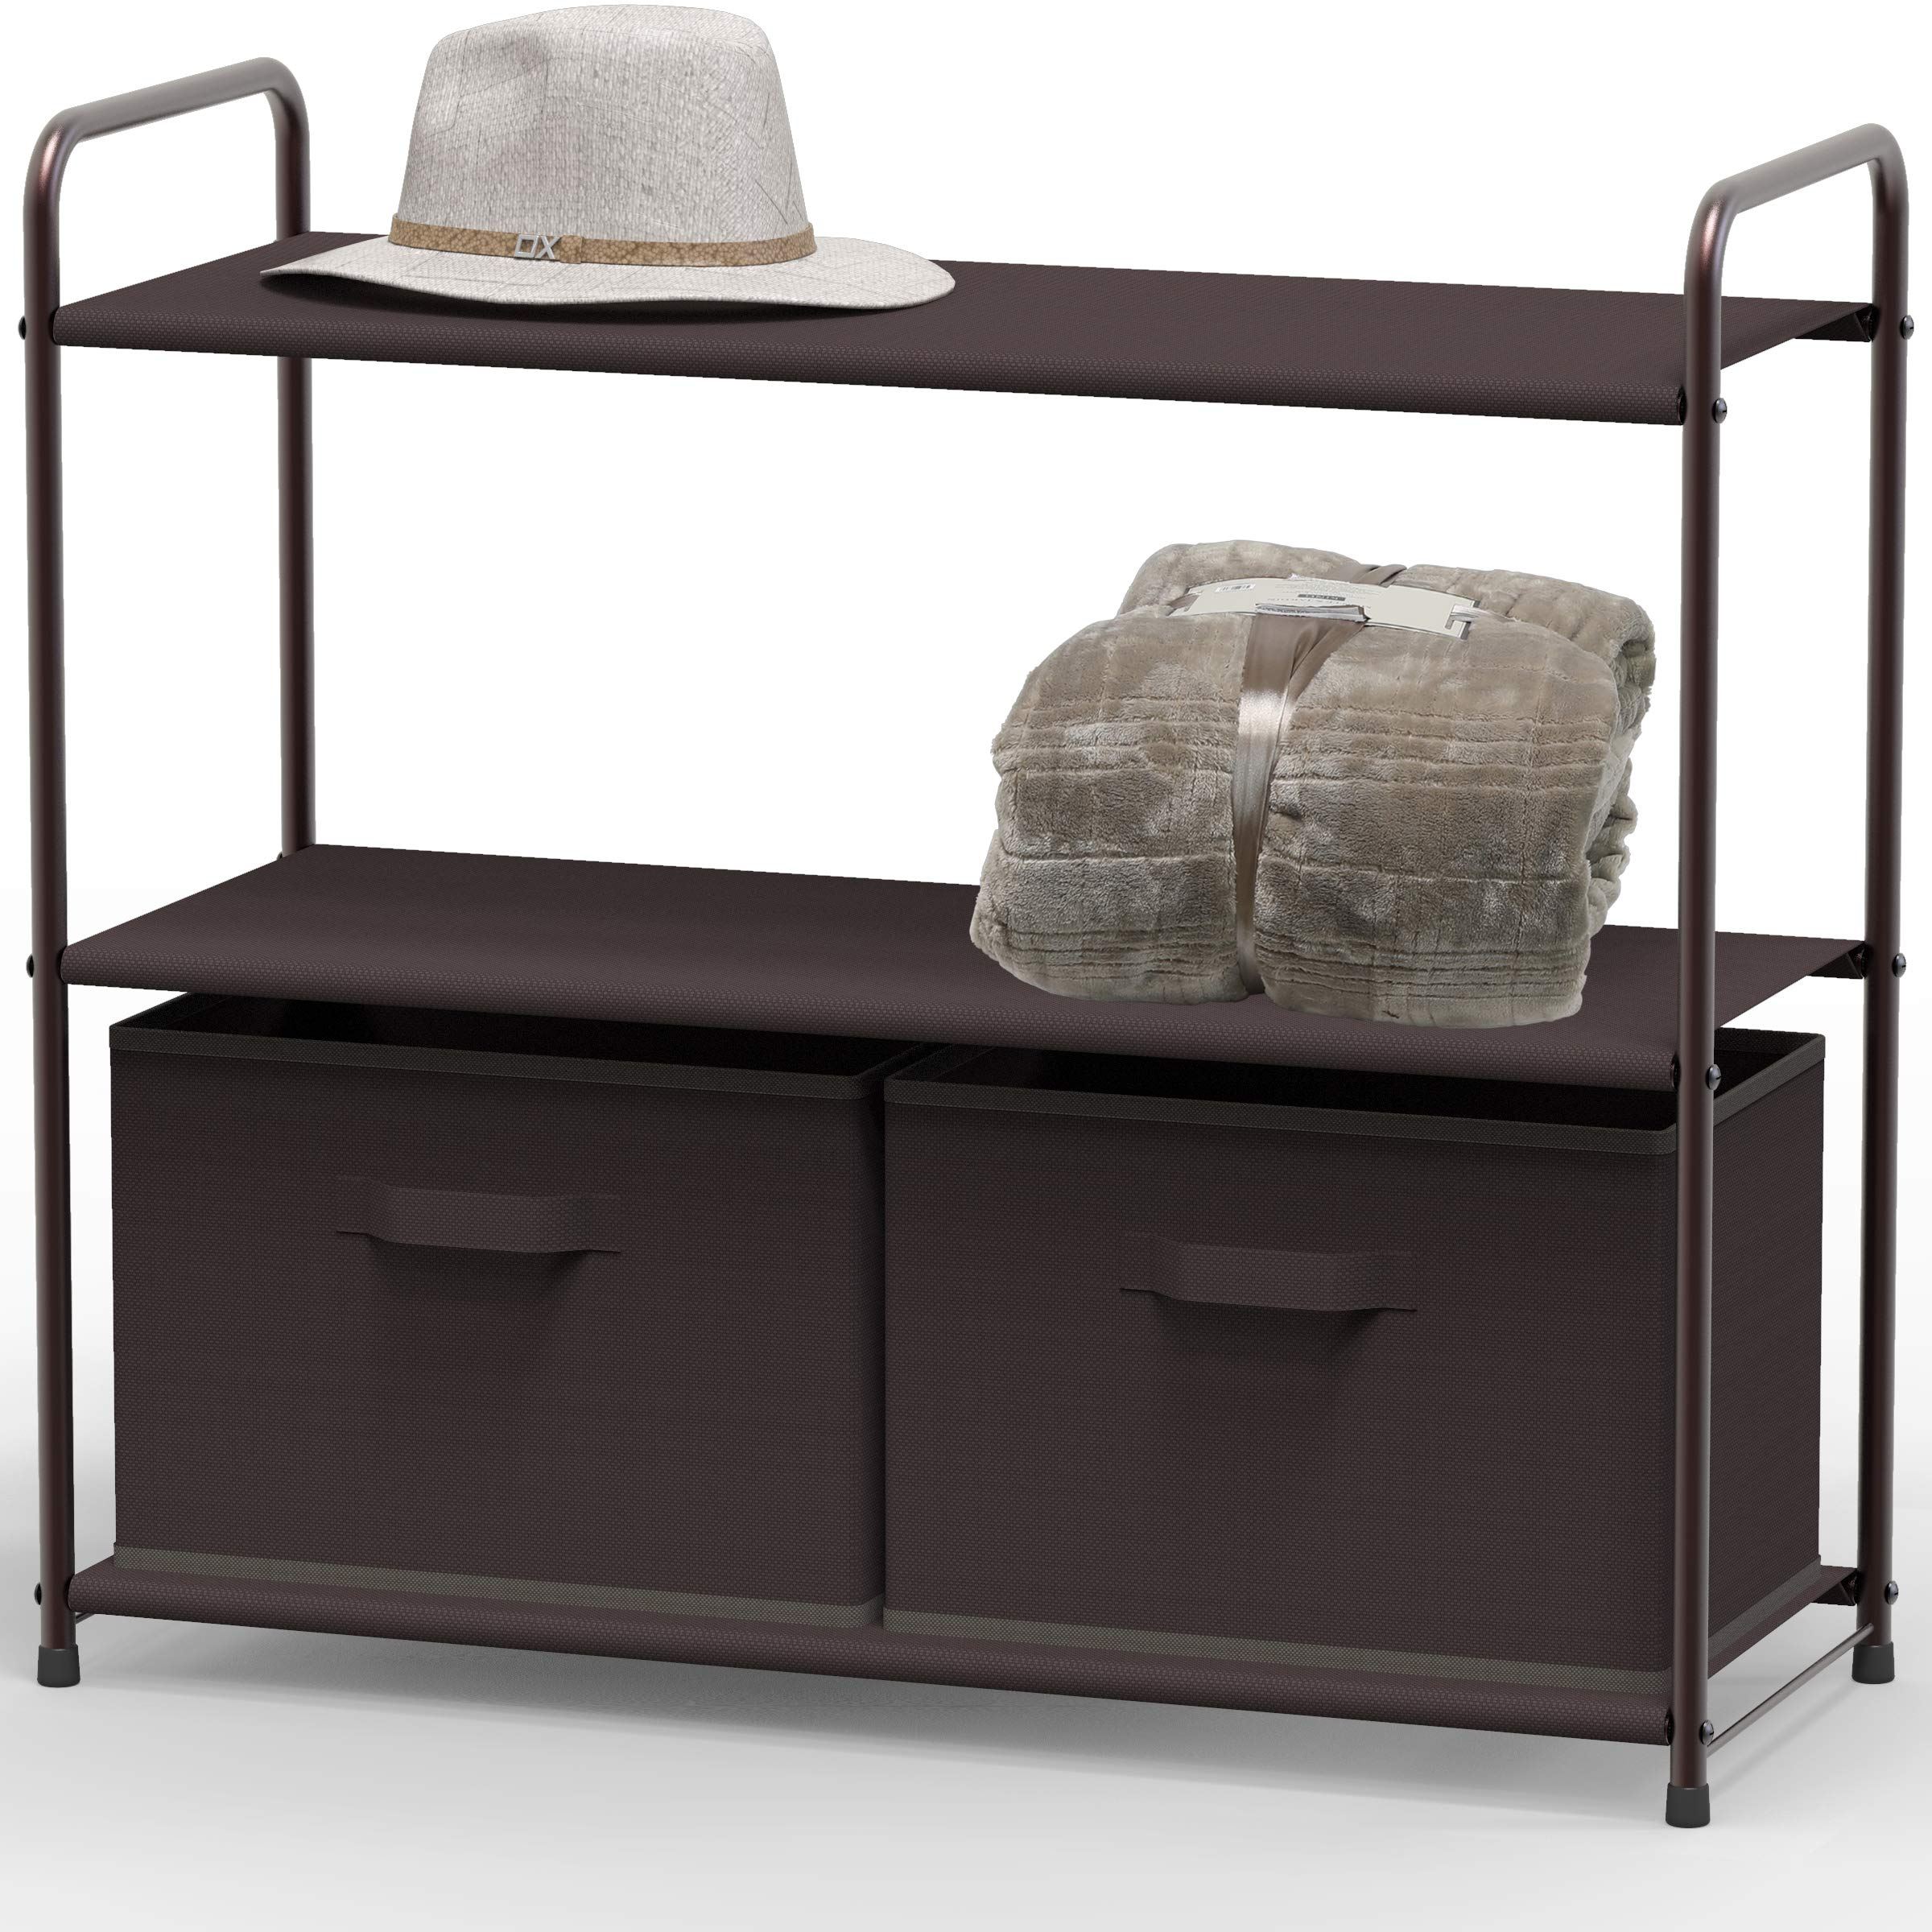 SImpleHouseware 3 Layer Closet Storage with 2 Drawers, Brown by Simple Houseware